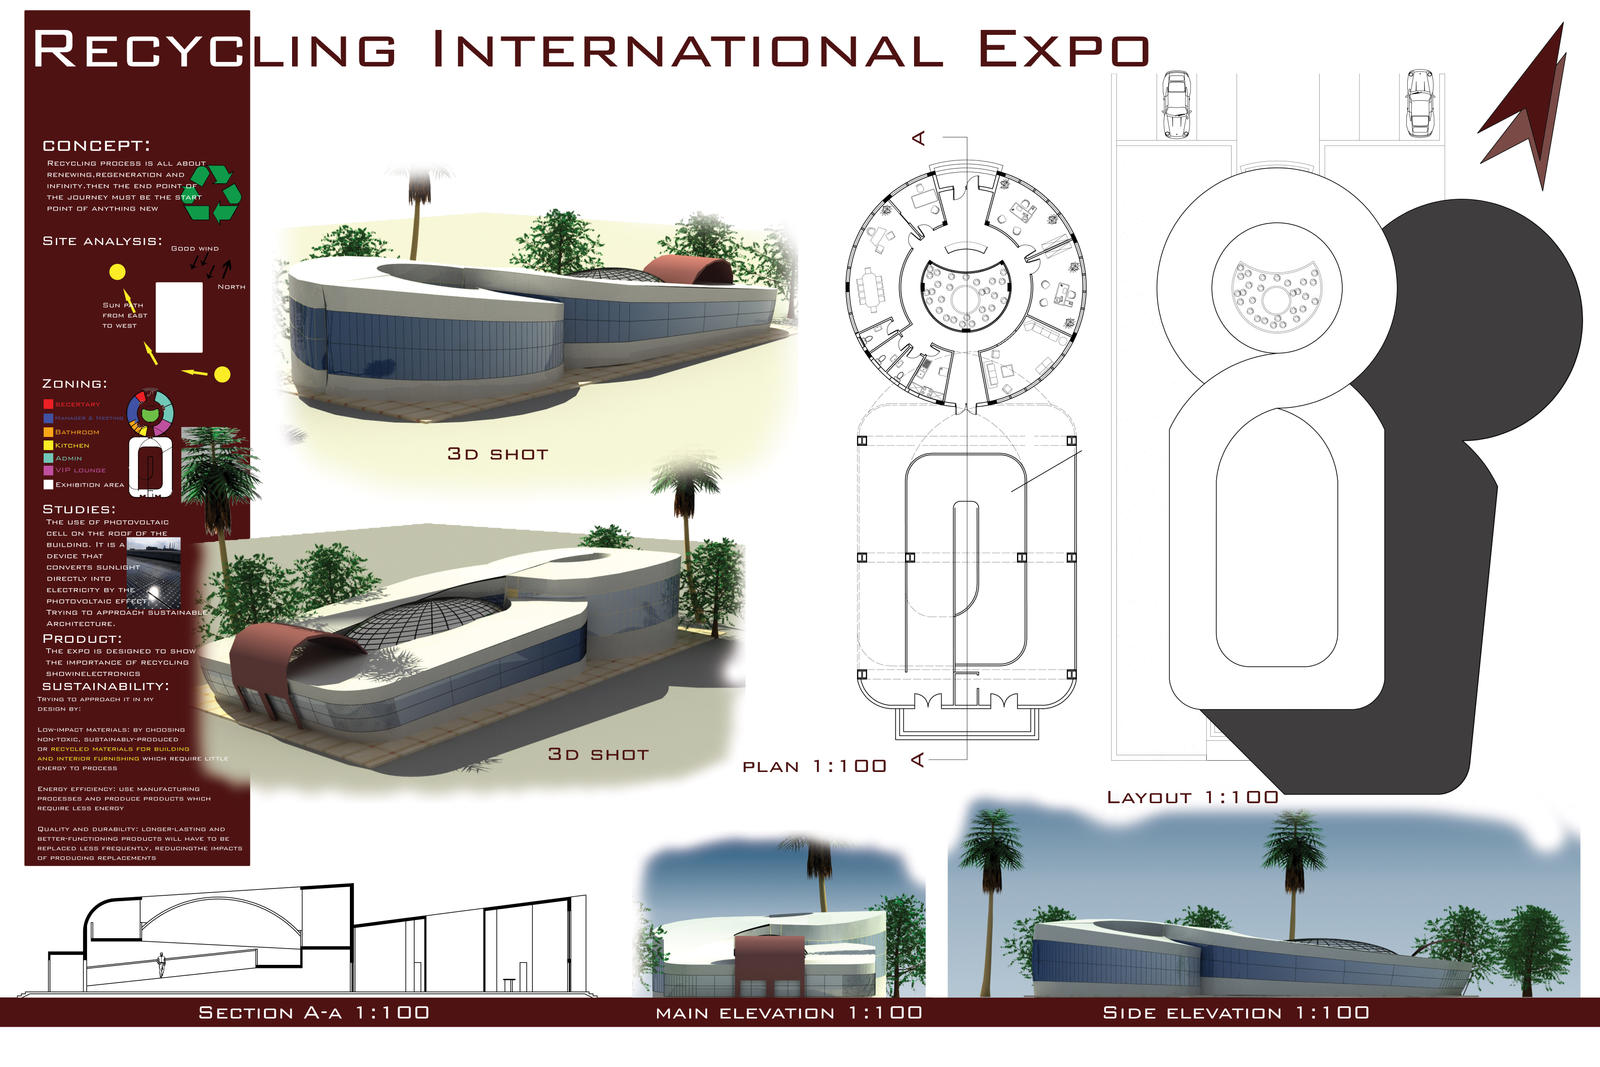 Architectural design exhbition by shadyonly on deviantart for Architectural design concept ppt